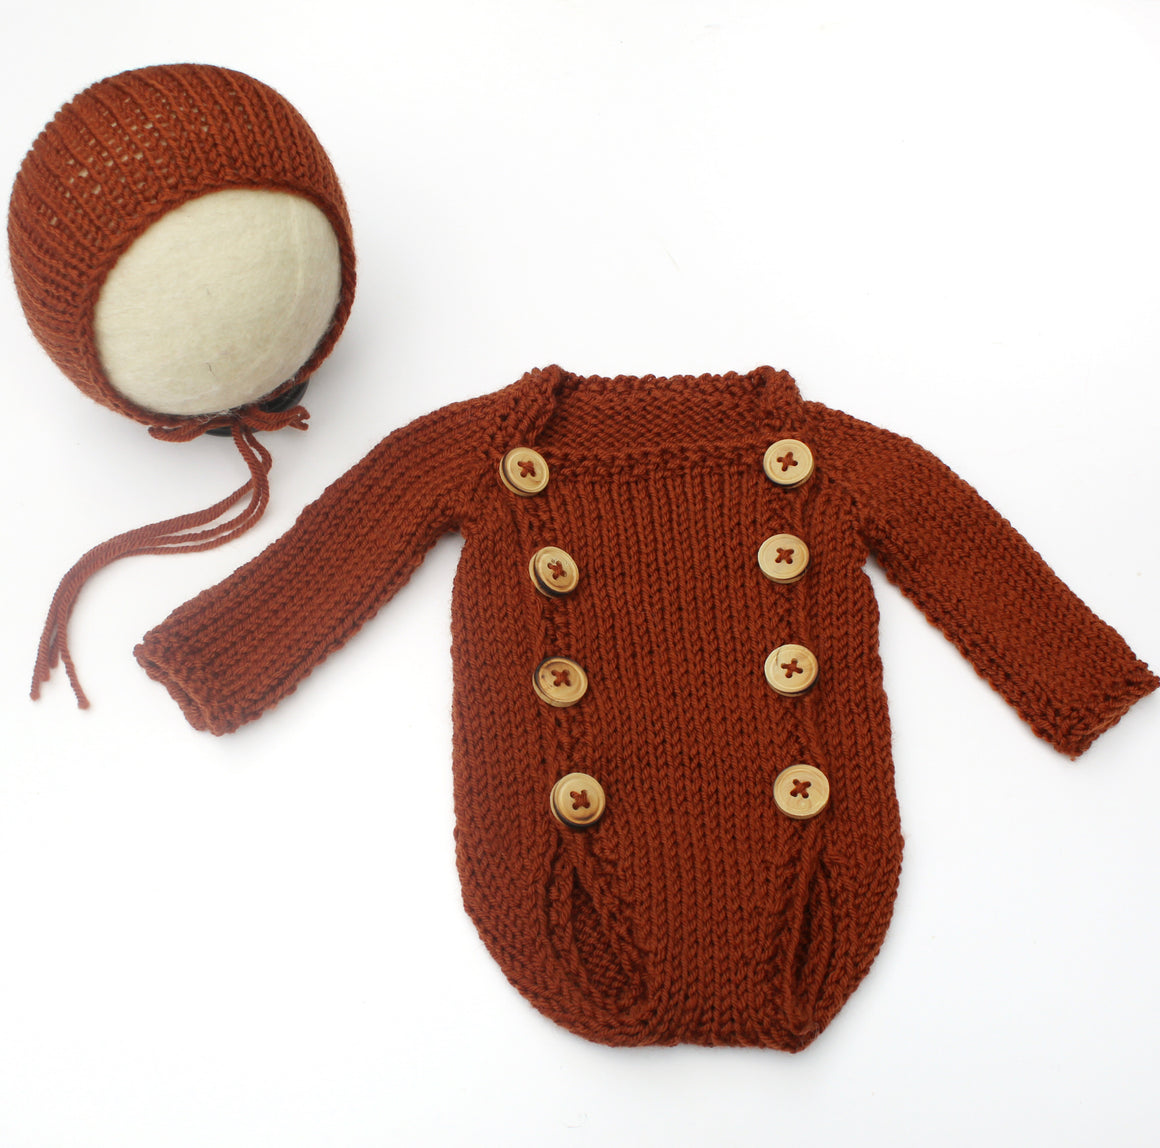 Rust Button Front Newborn Romper & Bonnet Set - Knit Photography Props by Double the Stitches